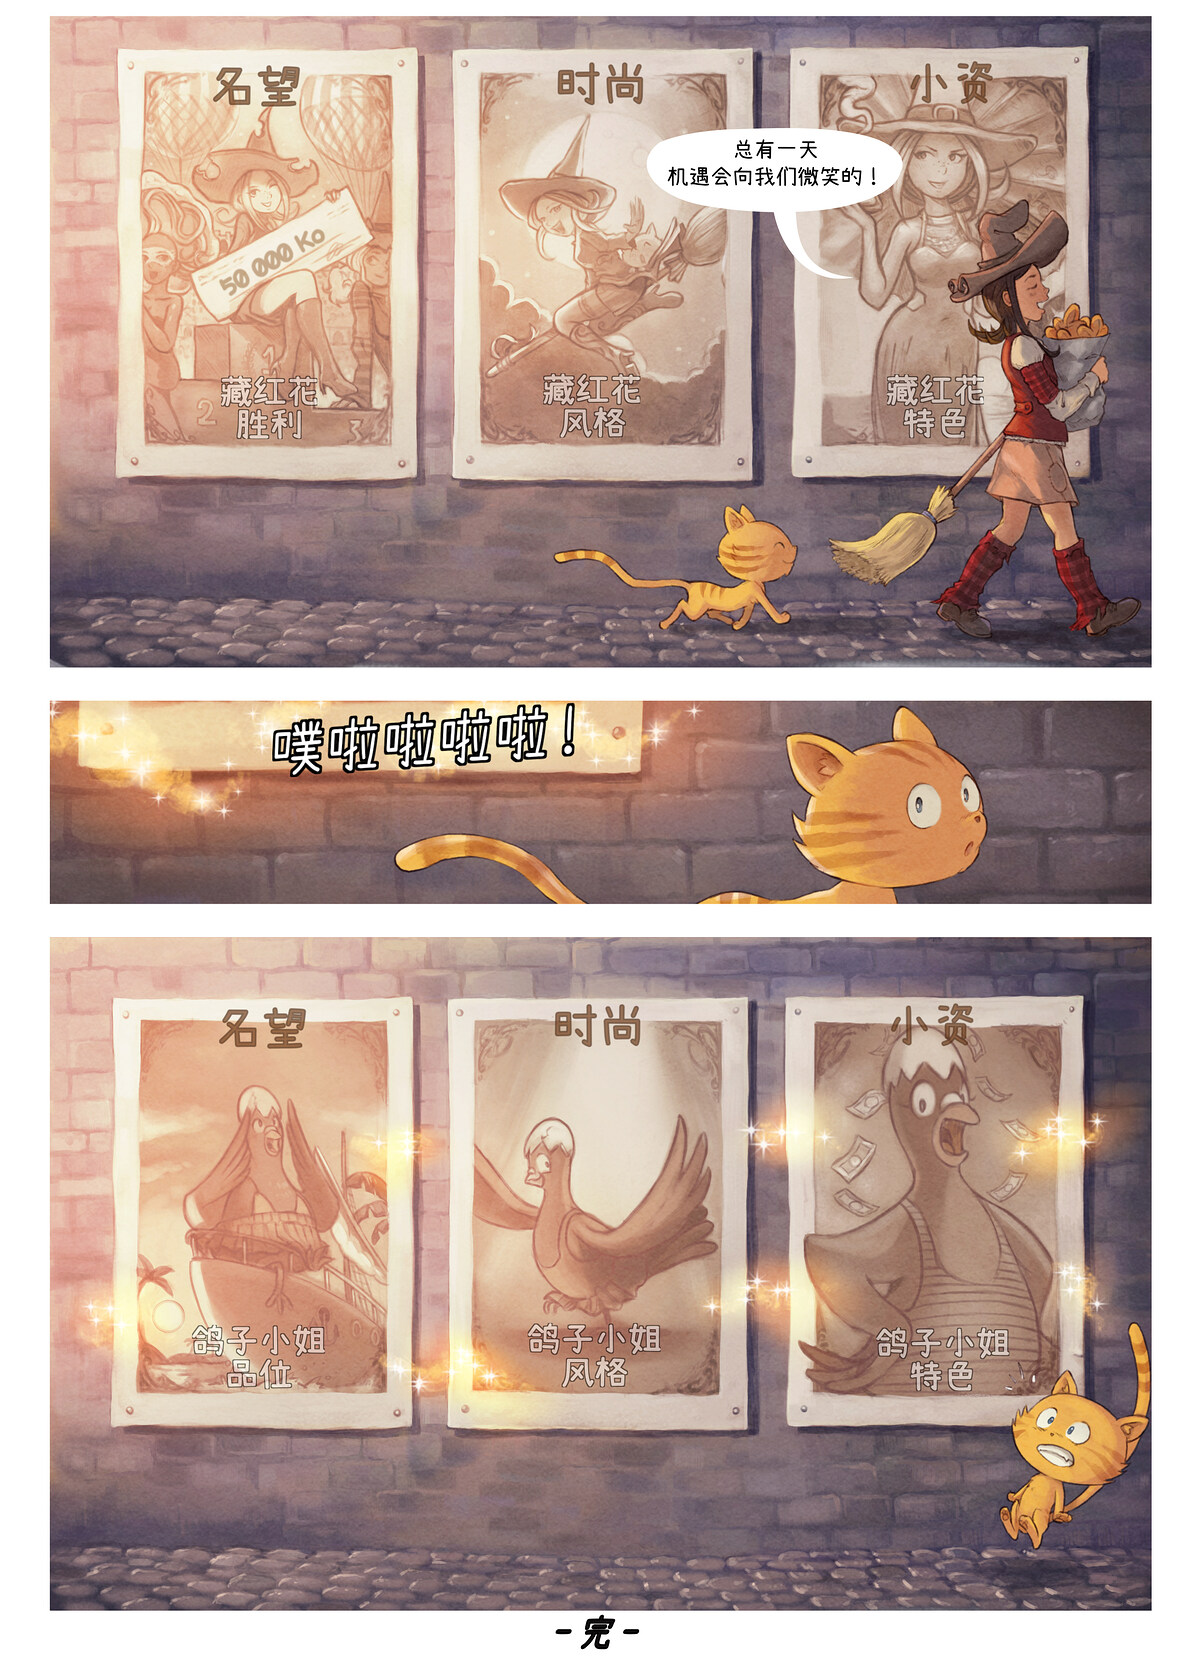 A webcomic page of Pepper&Carrot, 漫画全集 23 [cn], 页面 7